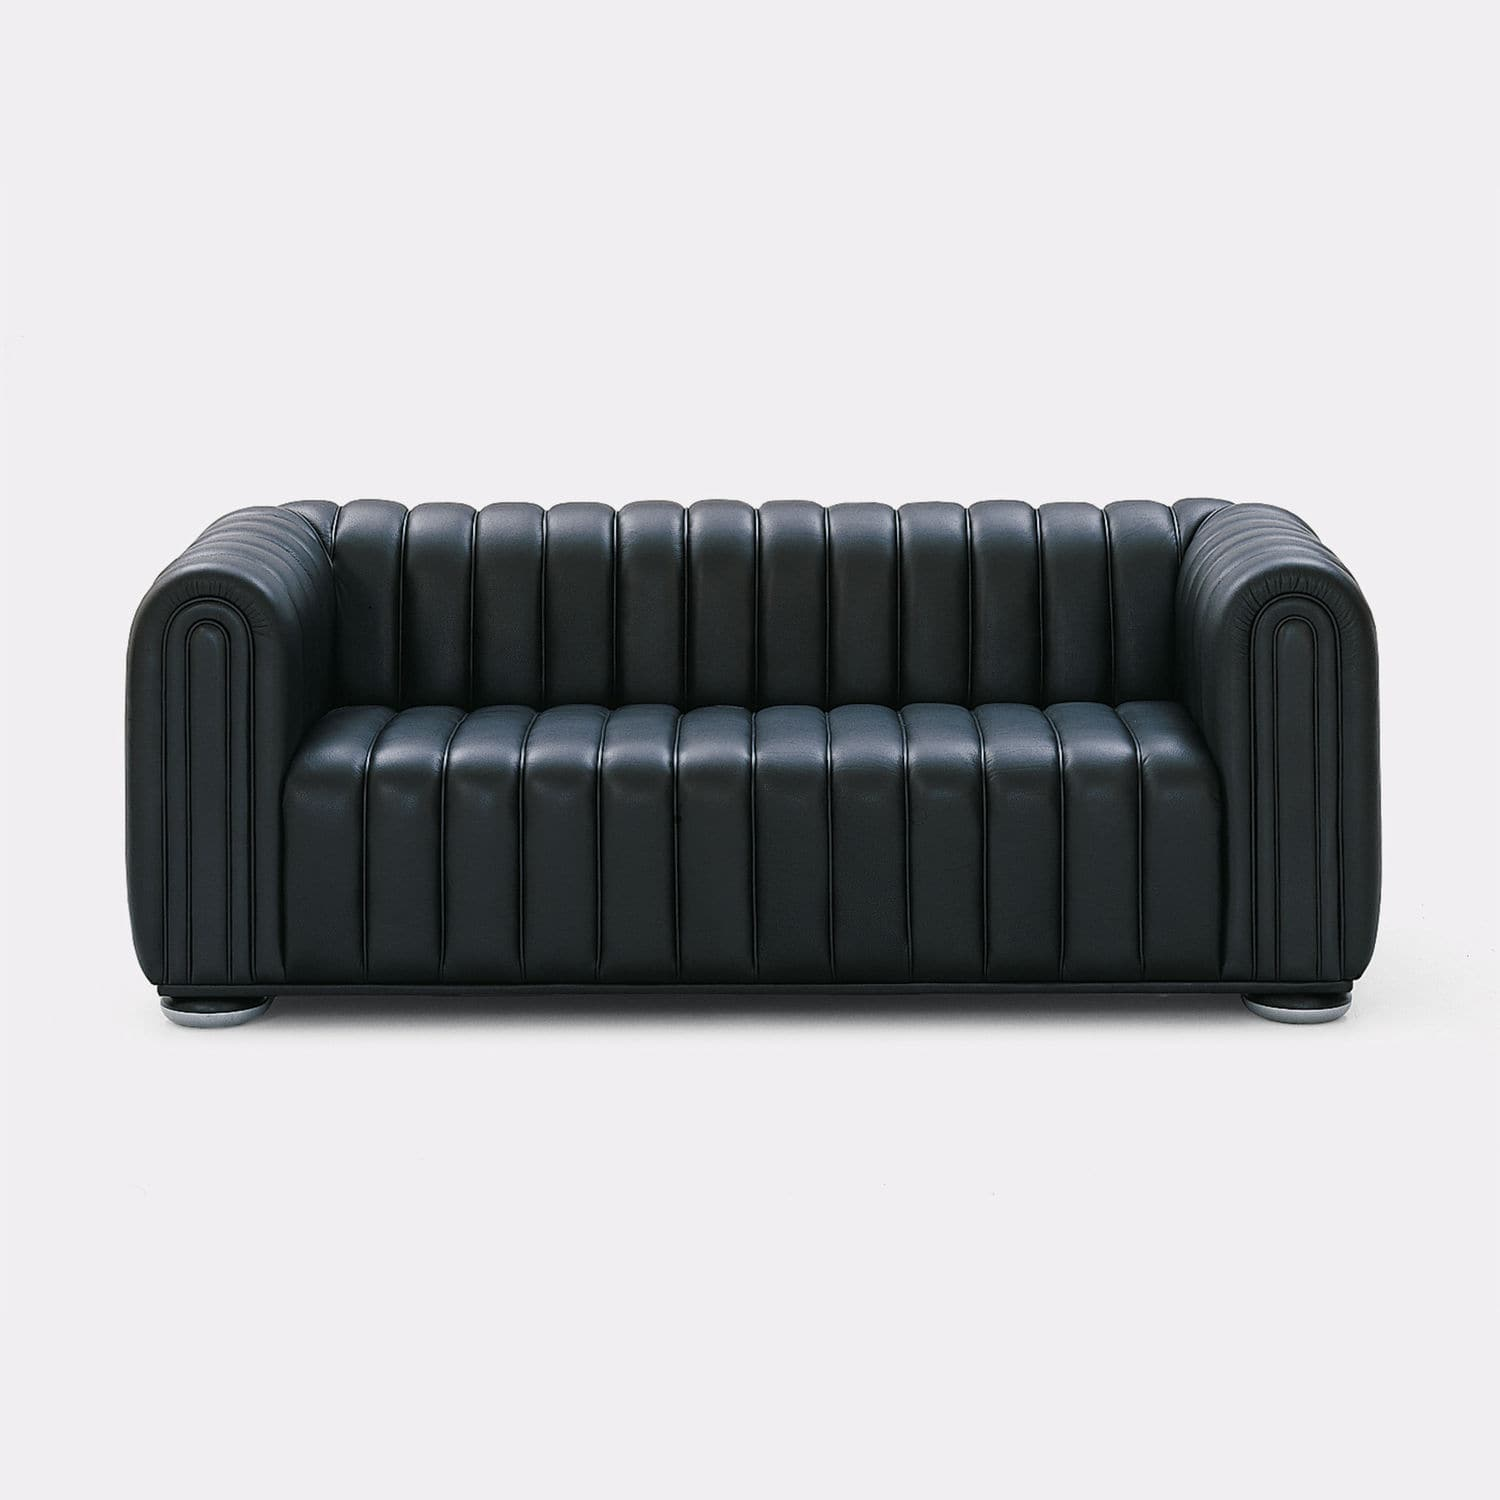 Contemporary Sofa Leather 3 Seater Black Club 1910 By Josef Hoffmann